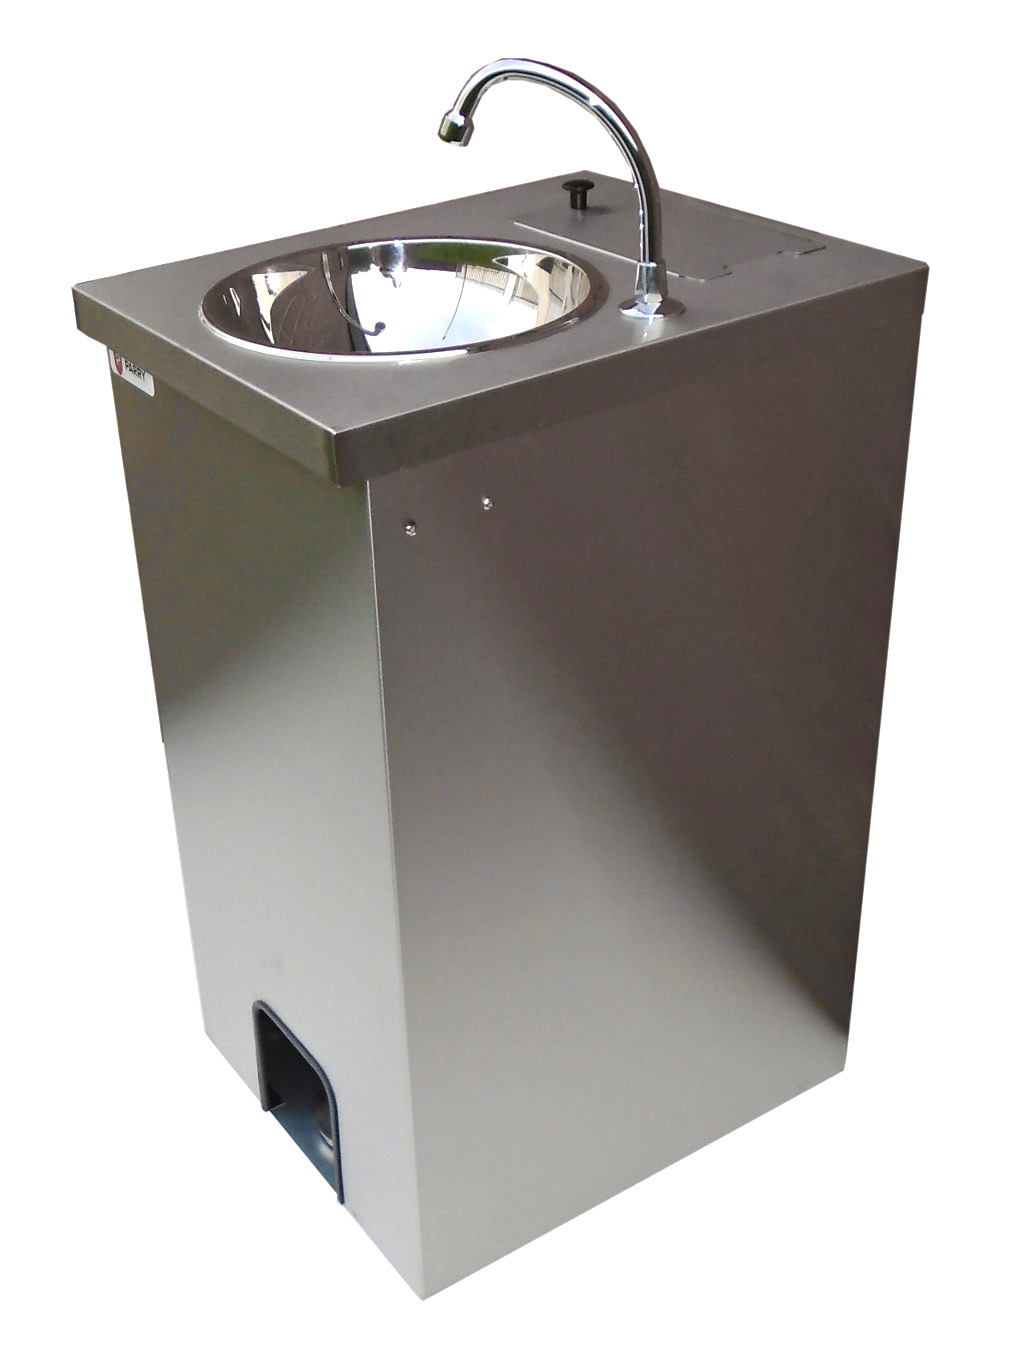 Electric Portable Sink Hot Hand Wash, St.Steel COVID - IN STOCK